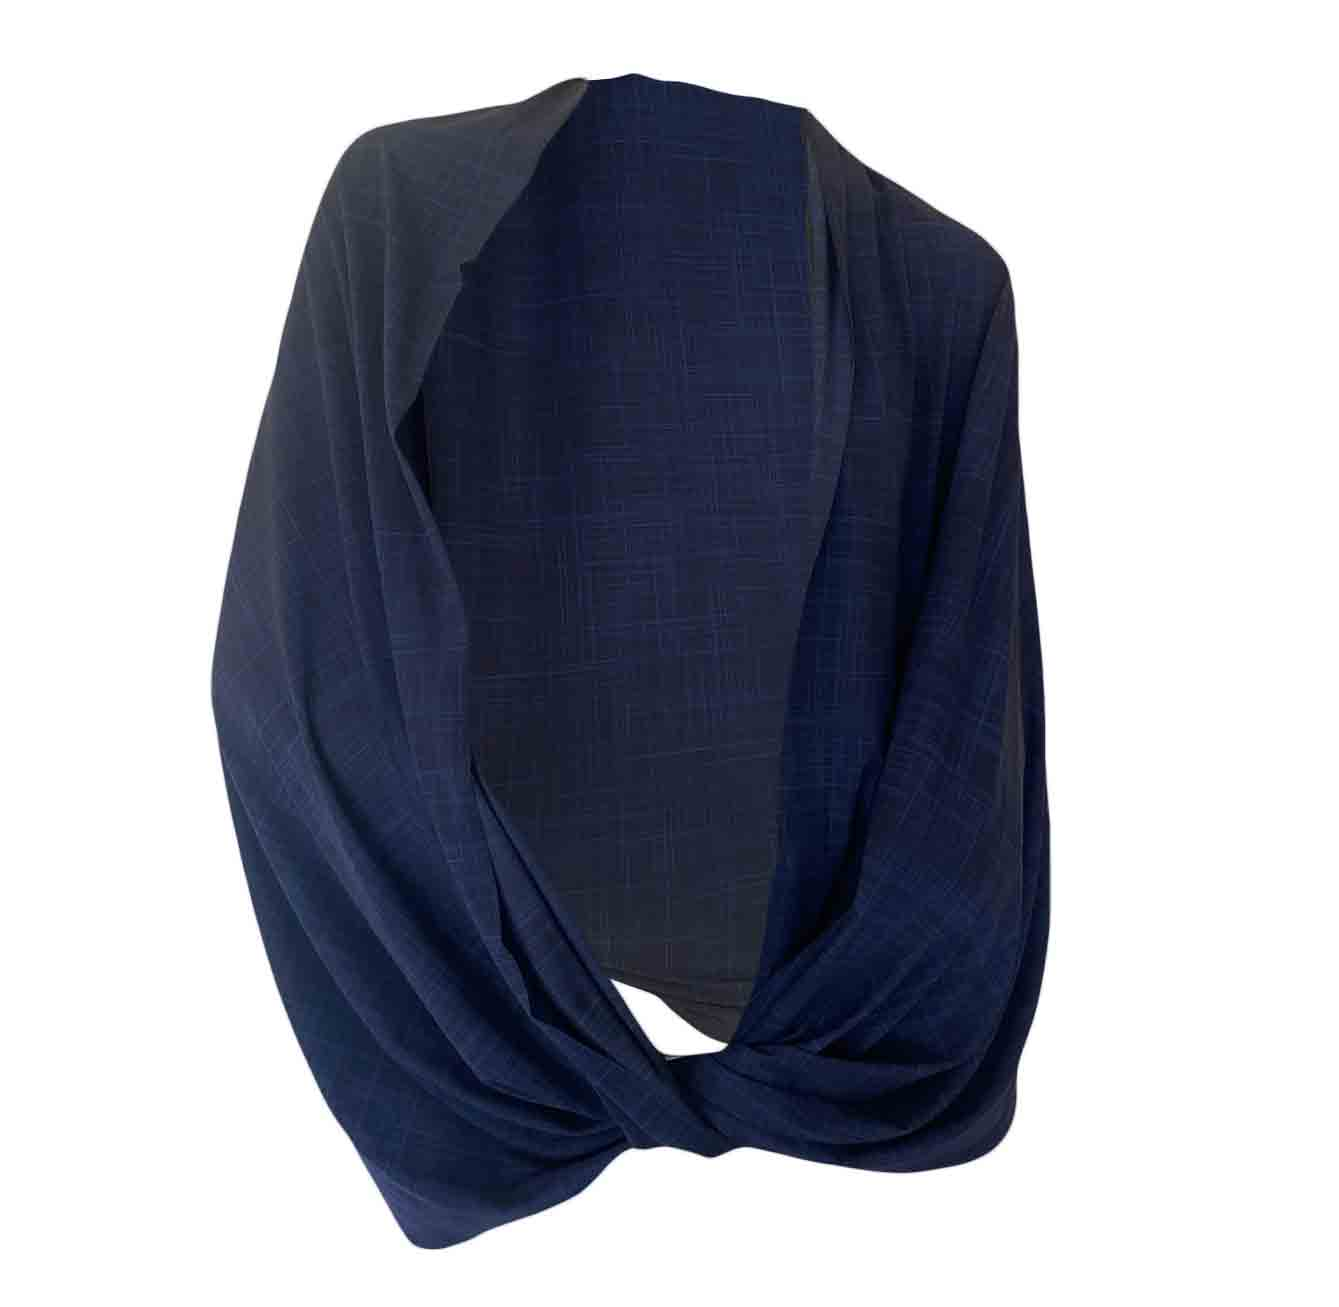 SunStyle Wrap UPF50+, Navy Linen Print